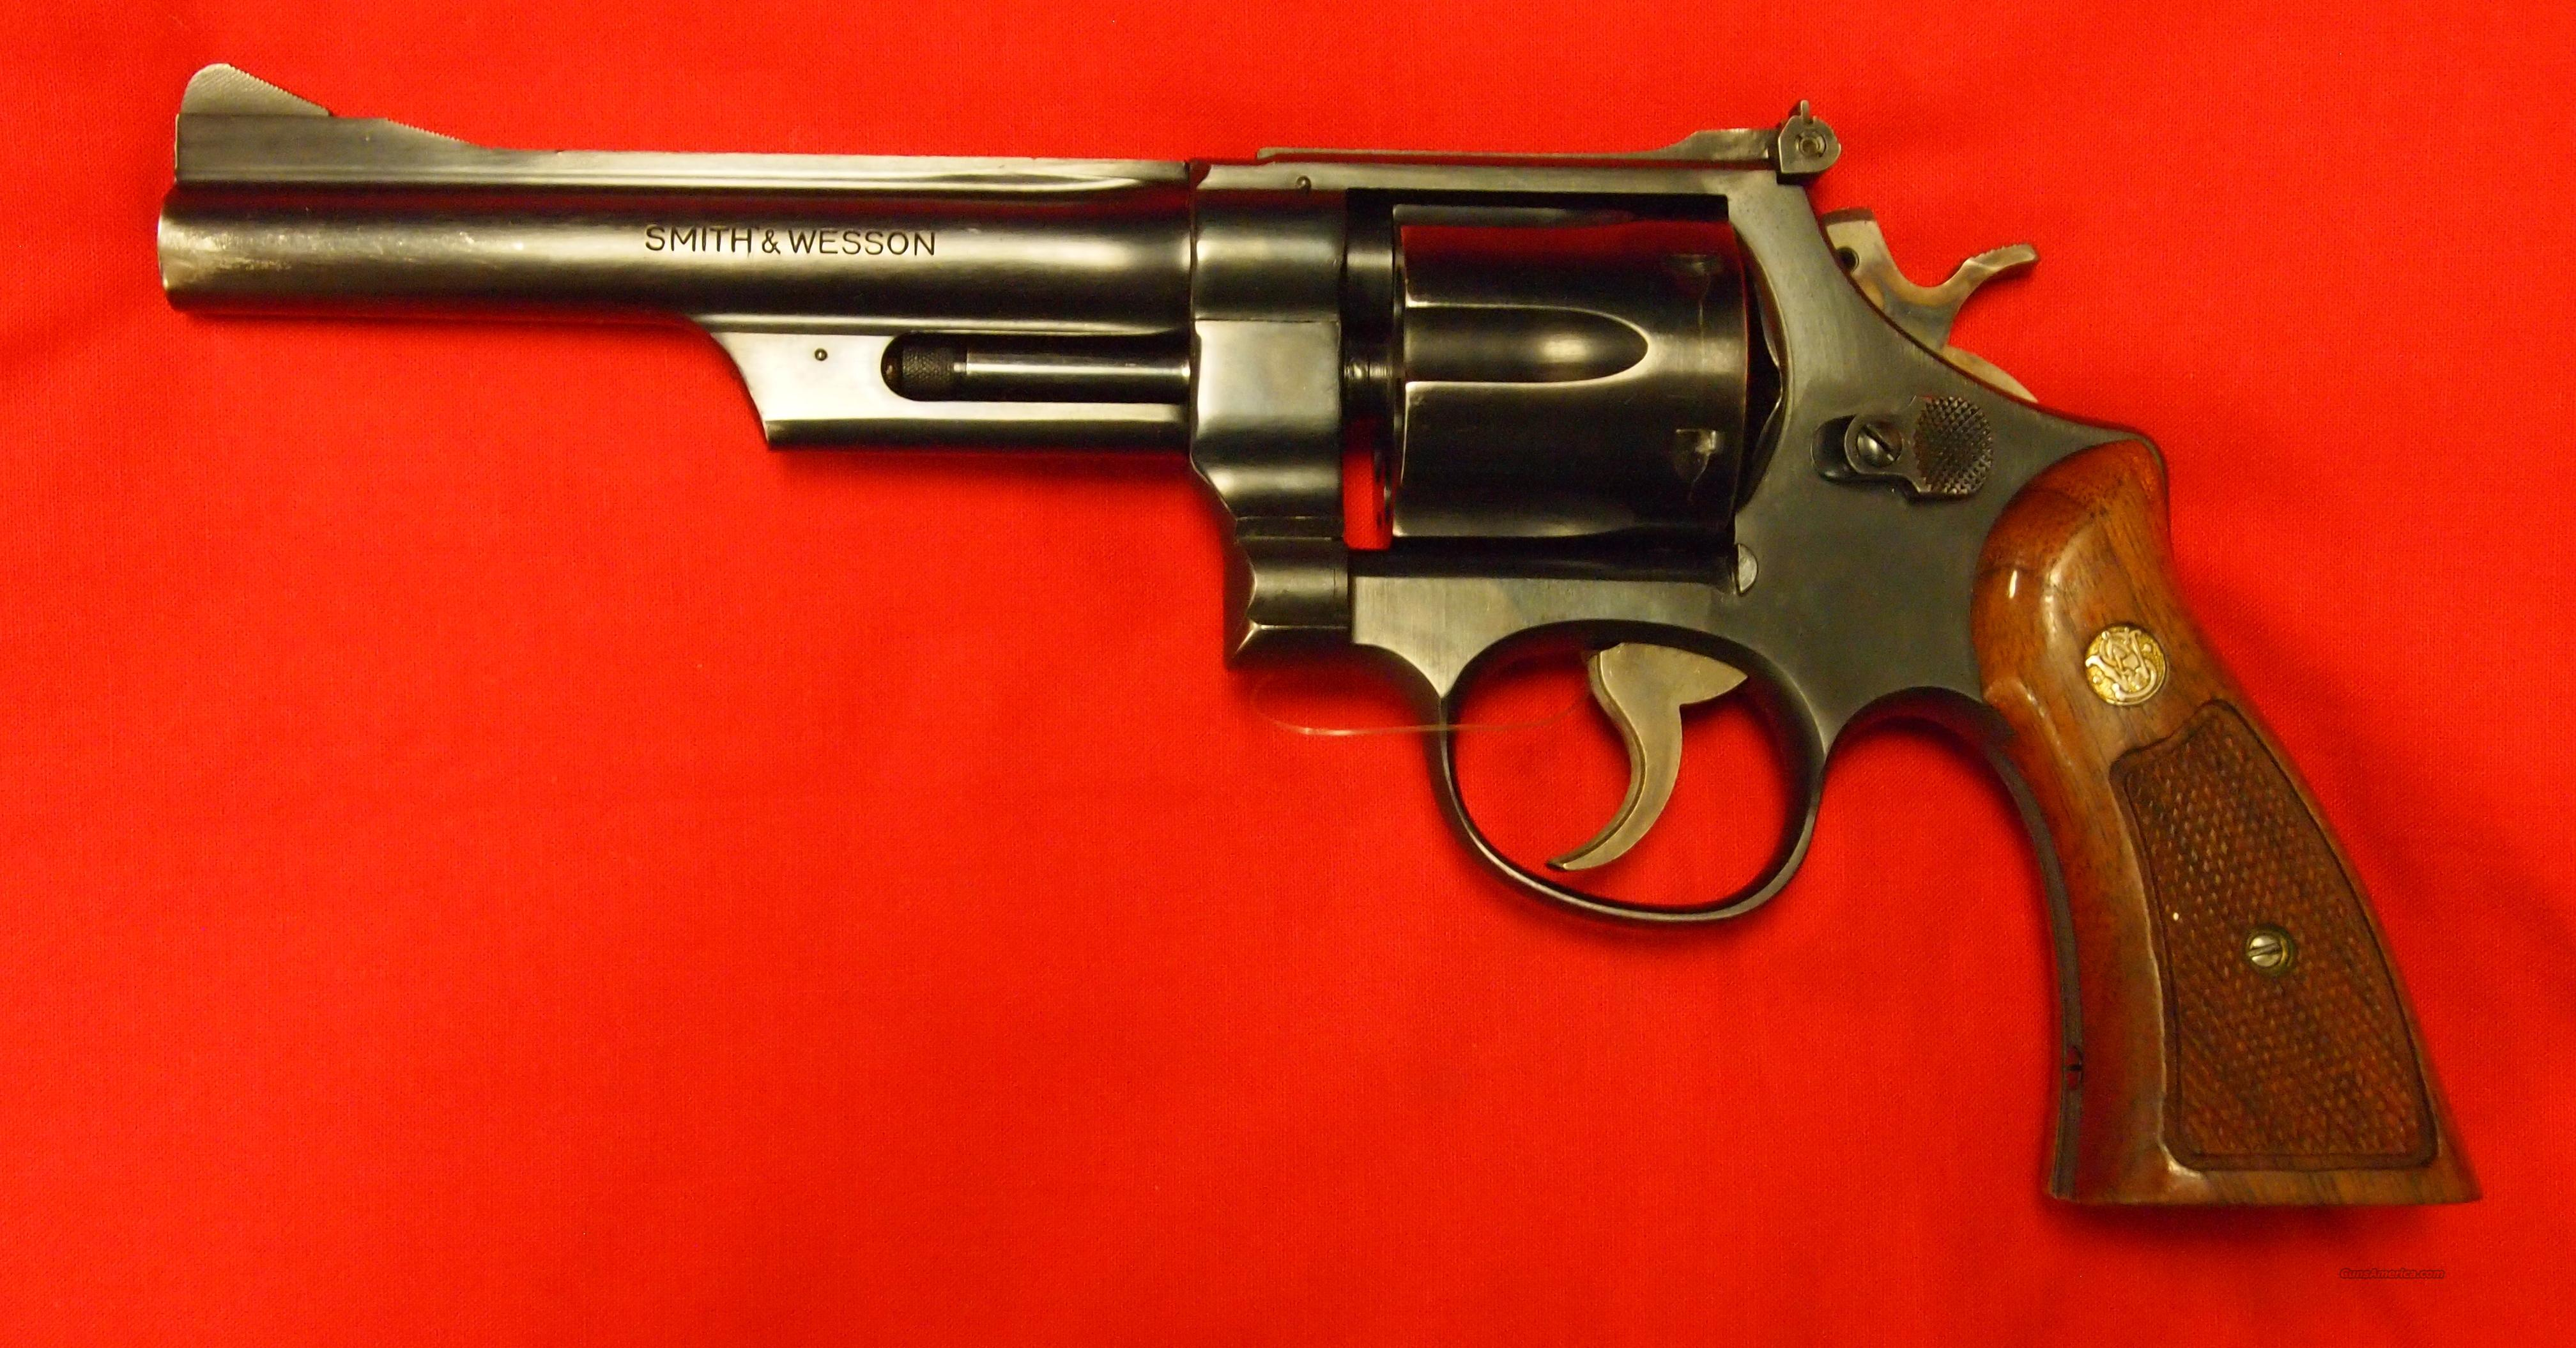 Smith & Wesson M- 28 357 MAG  Guns > Pistols > Smith & Wesson Revolvers > Full Frame Revolver